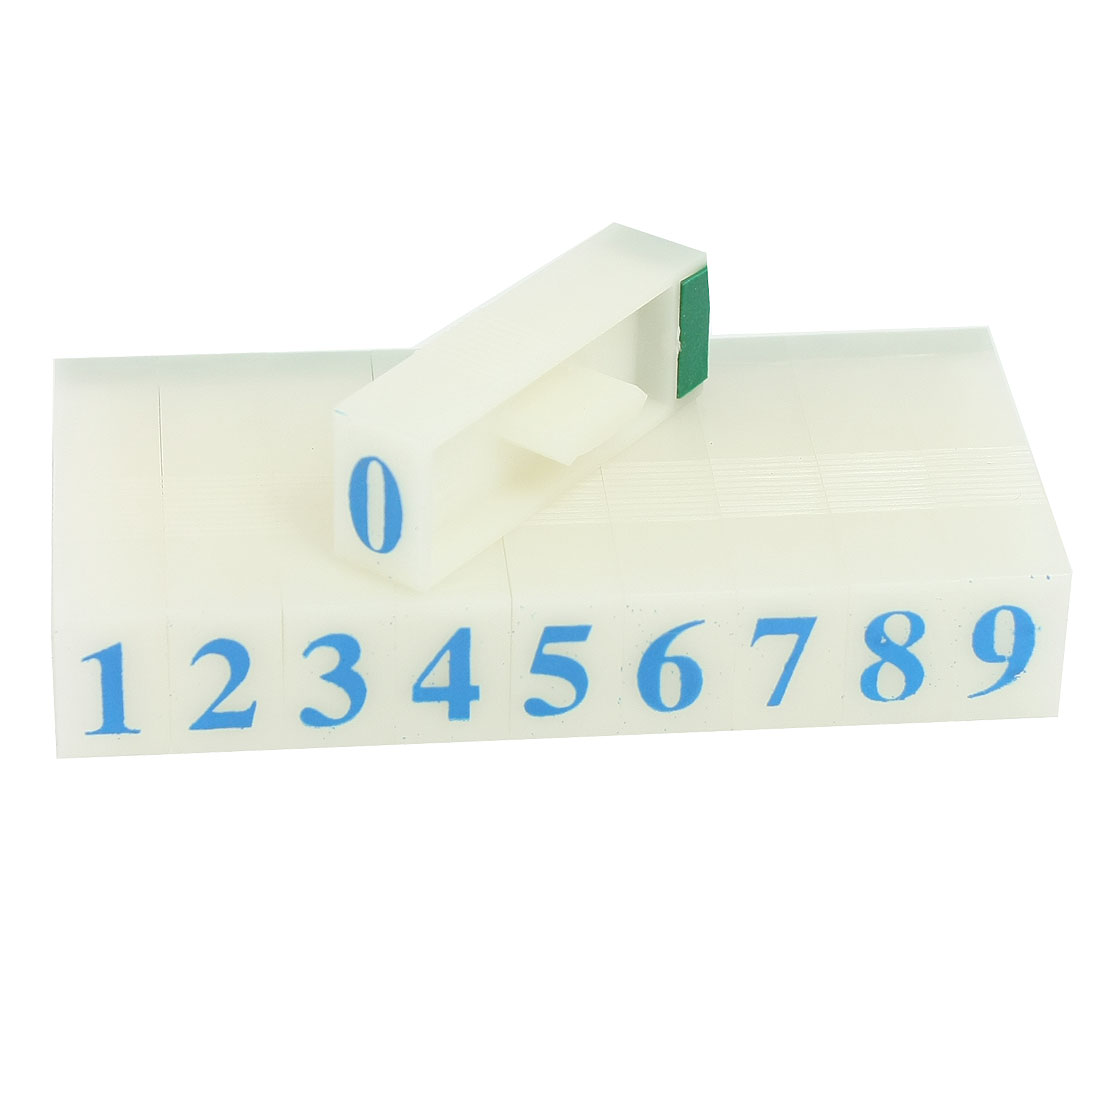 "0.3"" x 0.4"" Plastic 10 Digits Arabic Numerals Combination Stamp Block Set"